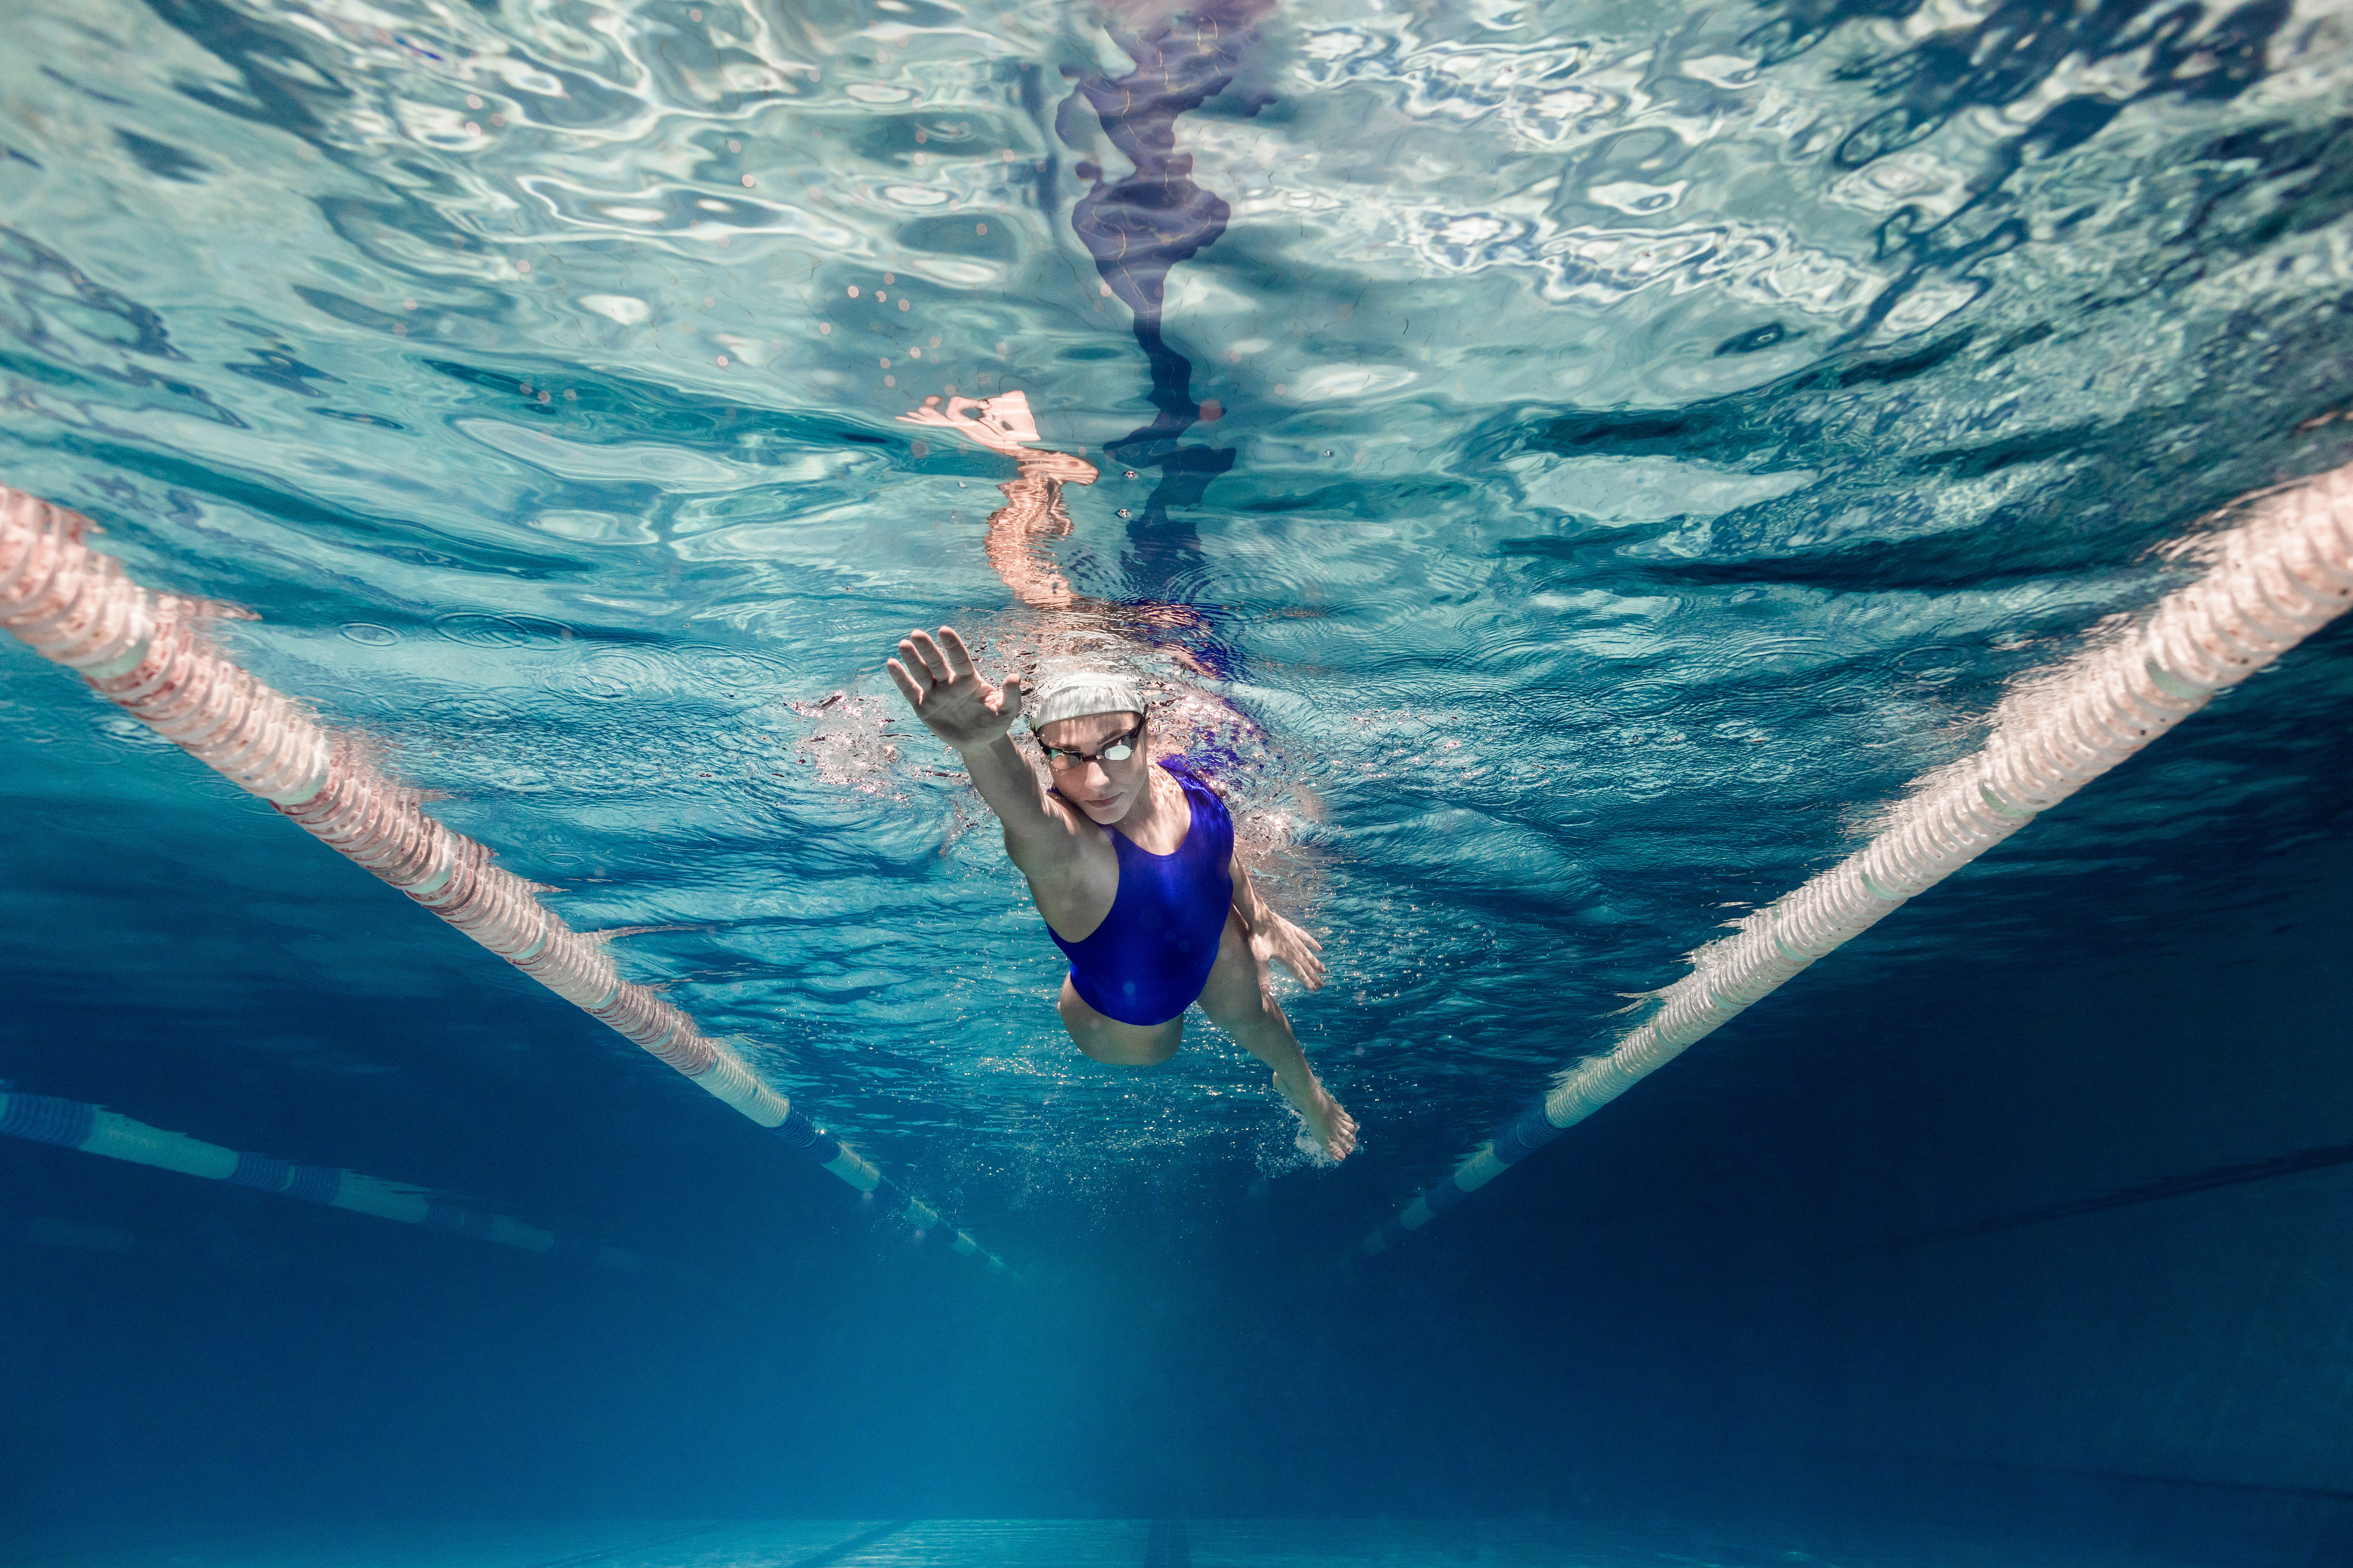 Competitive Swimmer 2 hour analysis